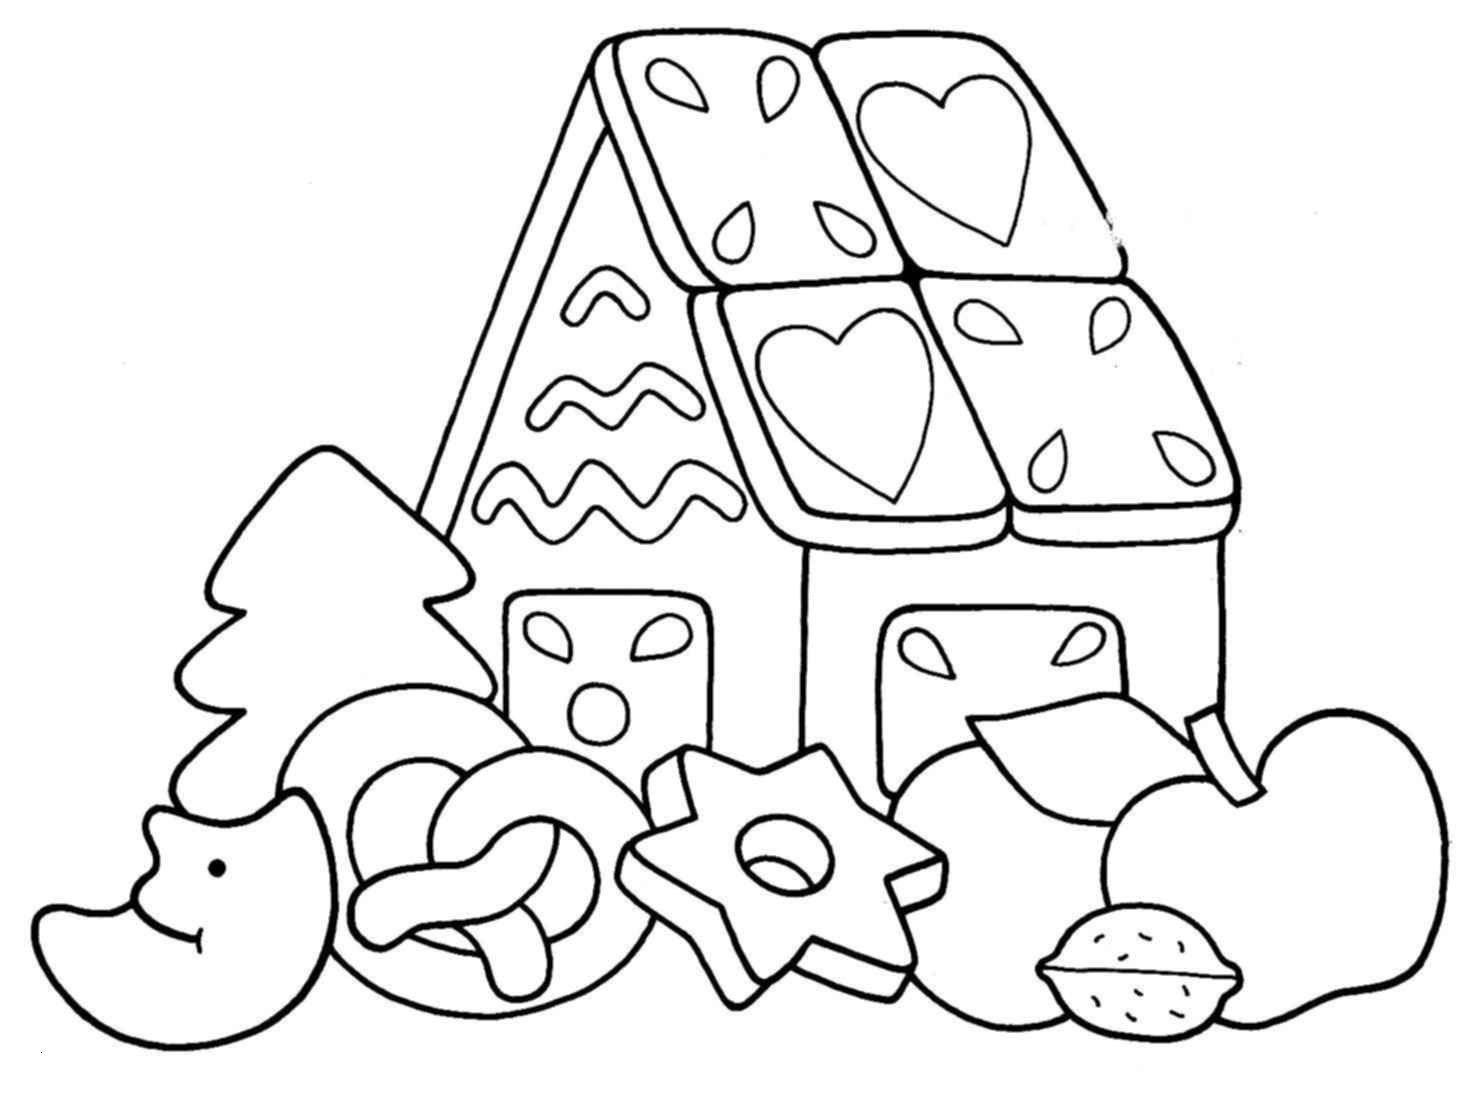 Mia and Me Coloring Pages Frisch Ausmalbilder Mia and Me Kostenlos Luxus Pin by Louise Brown Coloring Sammlung